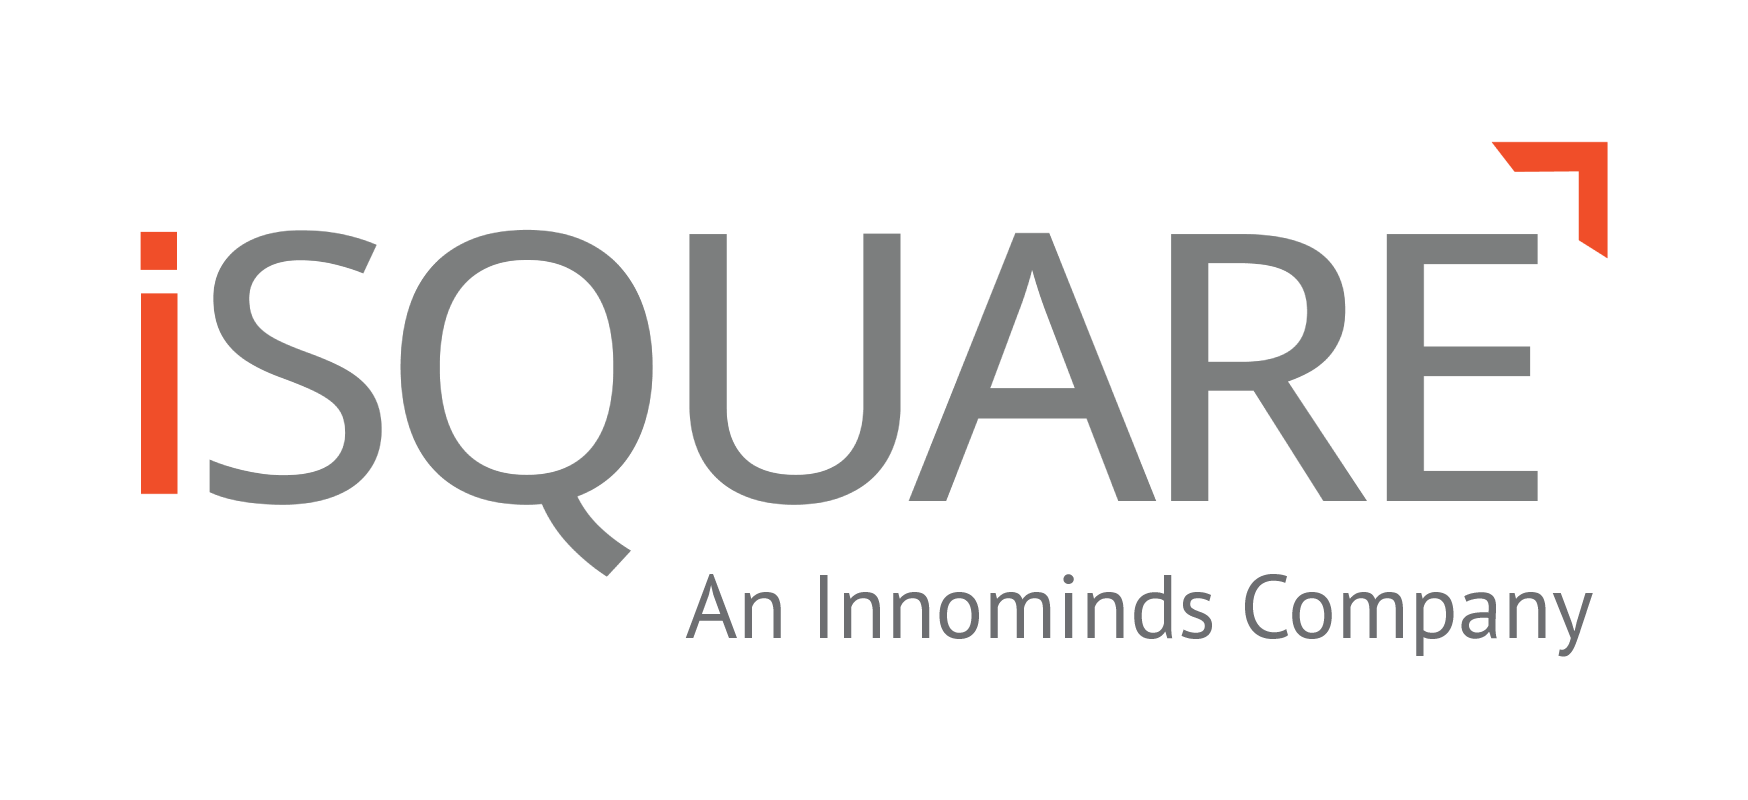 isquare-logo.png